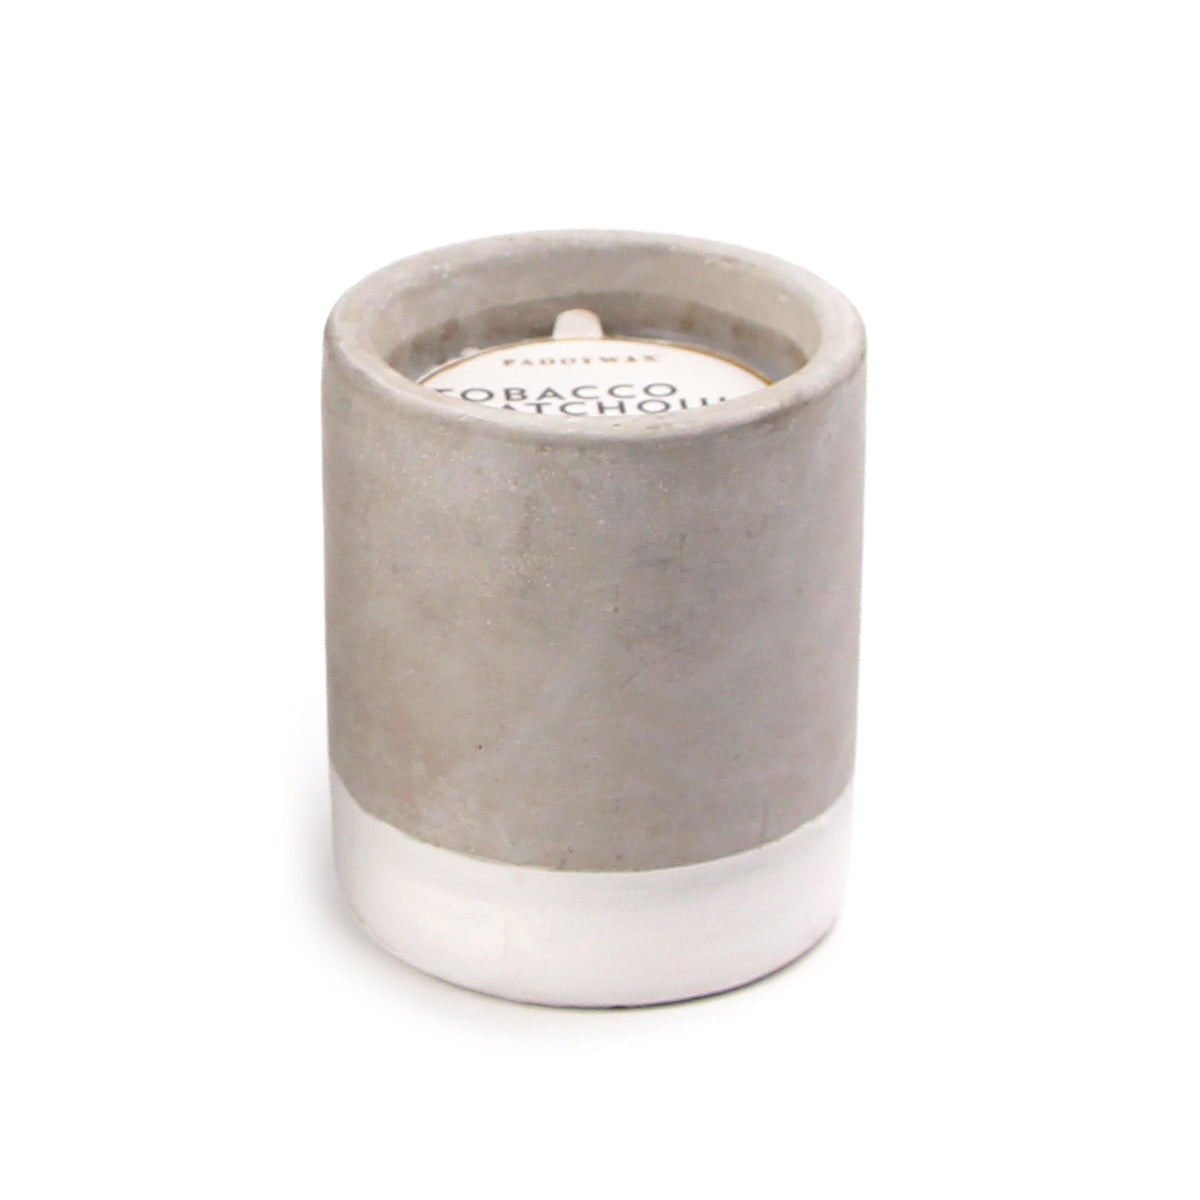 Urban Concrete Pot White Tobacco + Patchouli Candle - Coveted Style